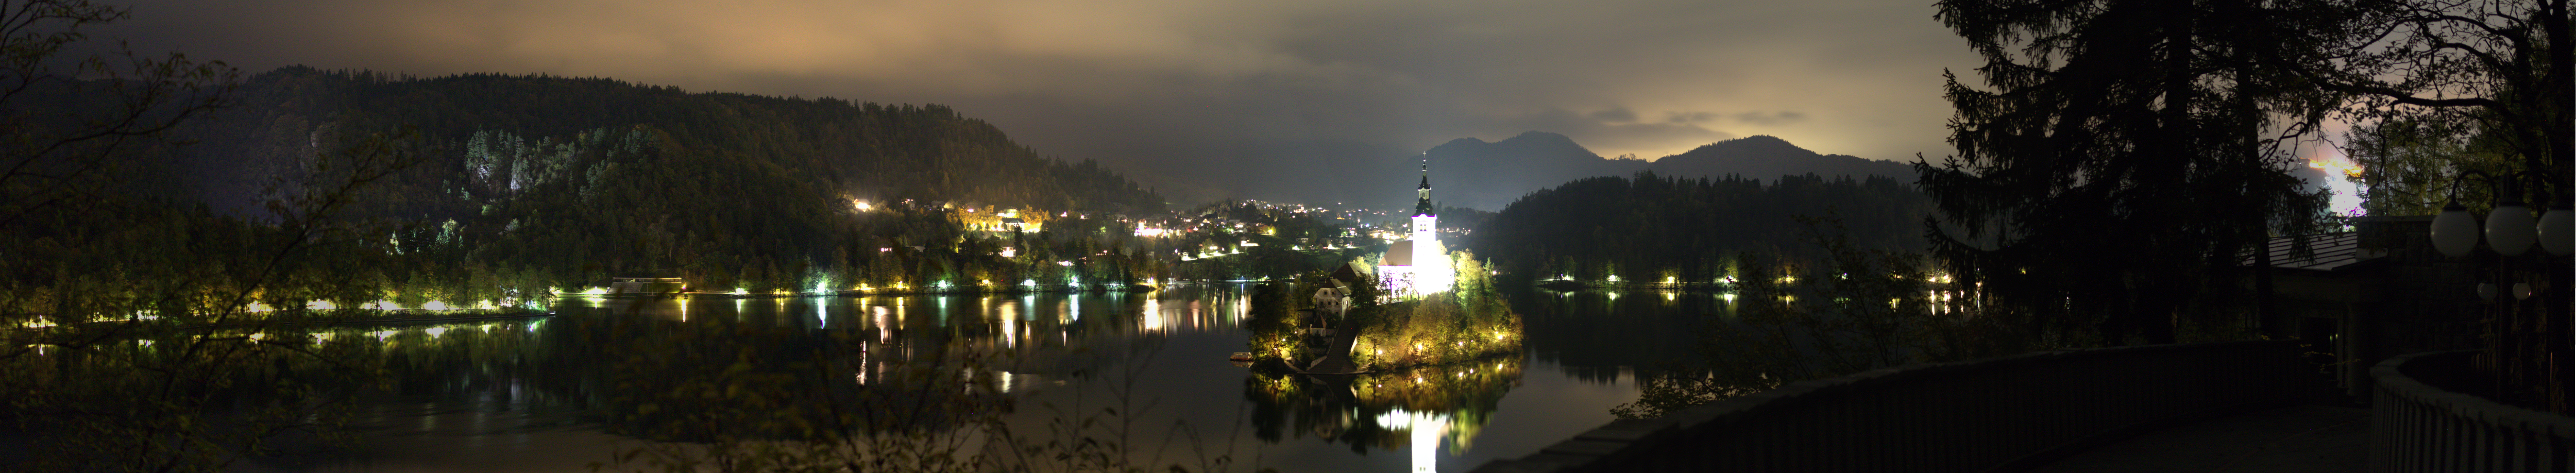 Panorama Bled Insel